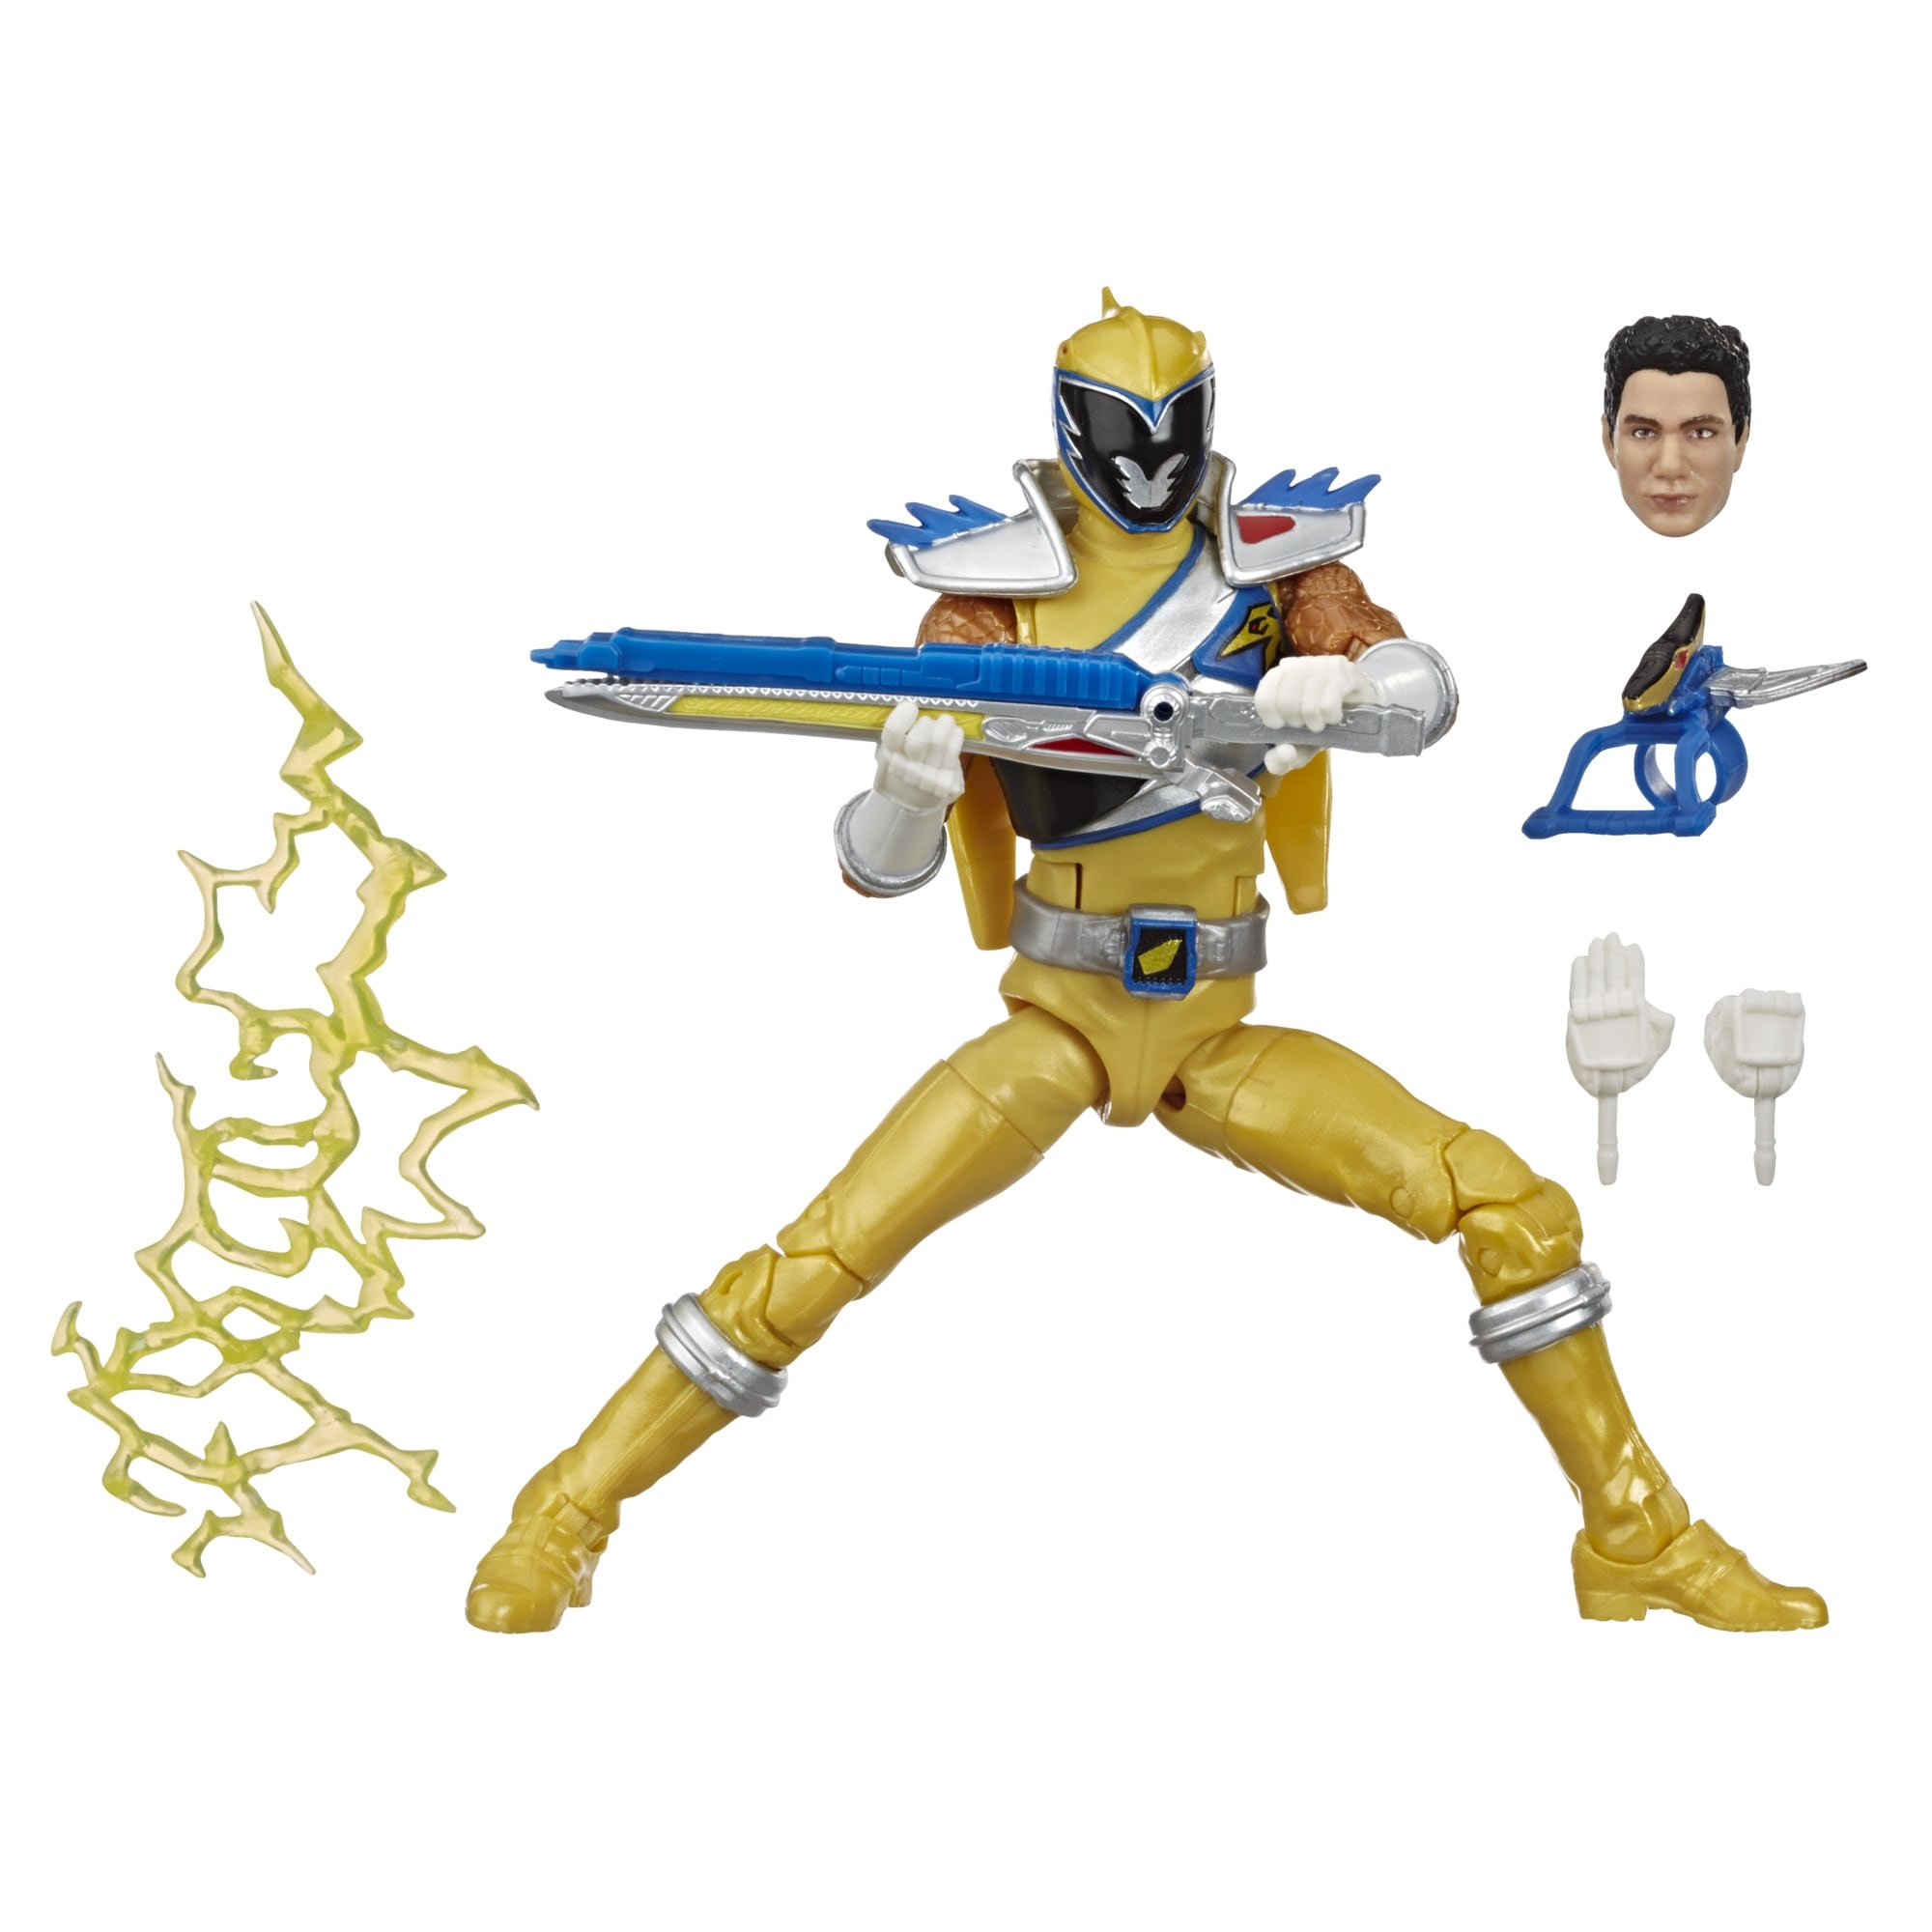 Power Rangers Lightning Collection Mighty Morphin Black Ranger 6-Inch Premium Collectible Action Figure Toy with Accessories